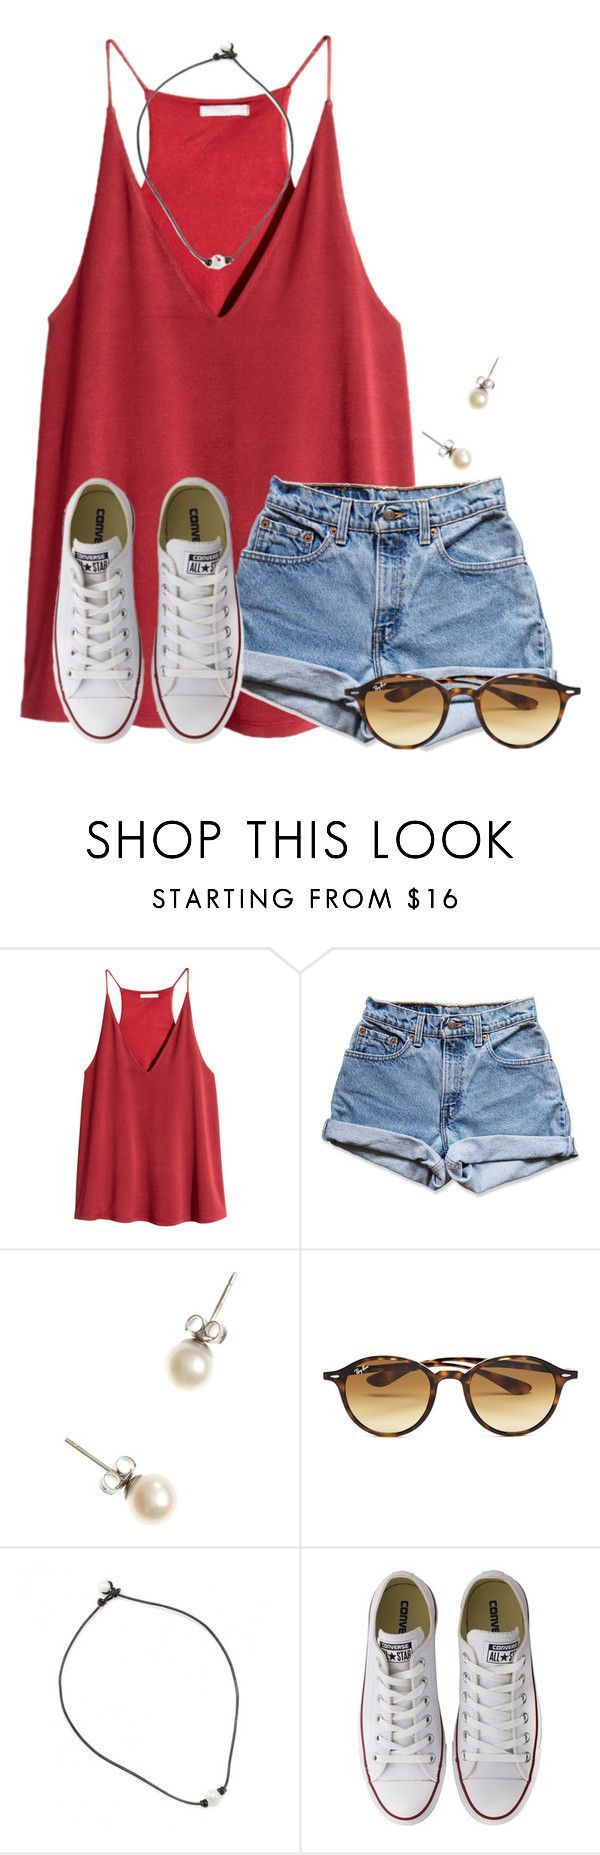 """""""~the weekend is near~"""" by flroasburn ❤ liked on Polyvore featuring H&M, Levi's, J.Crew, Ray-Ban and Converse"""